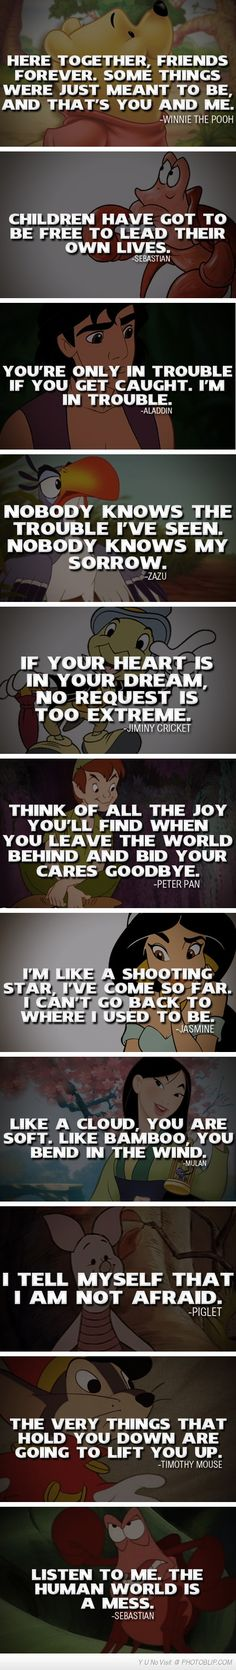 Disney Quote Compilation.I read these in the voices of the characters. And I quite like the last one.